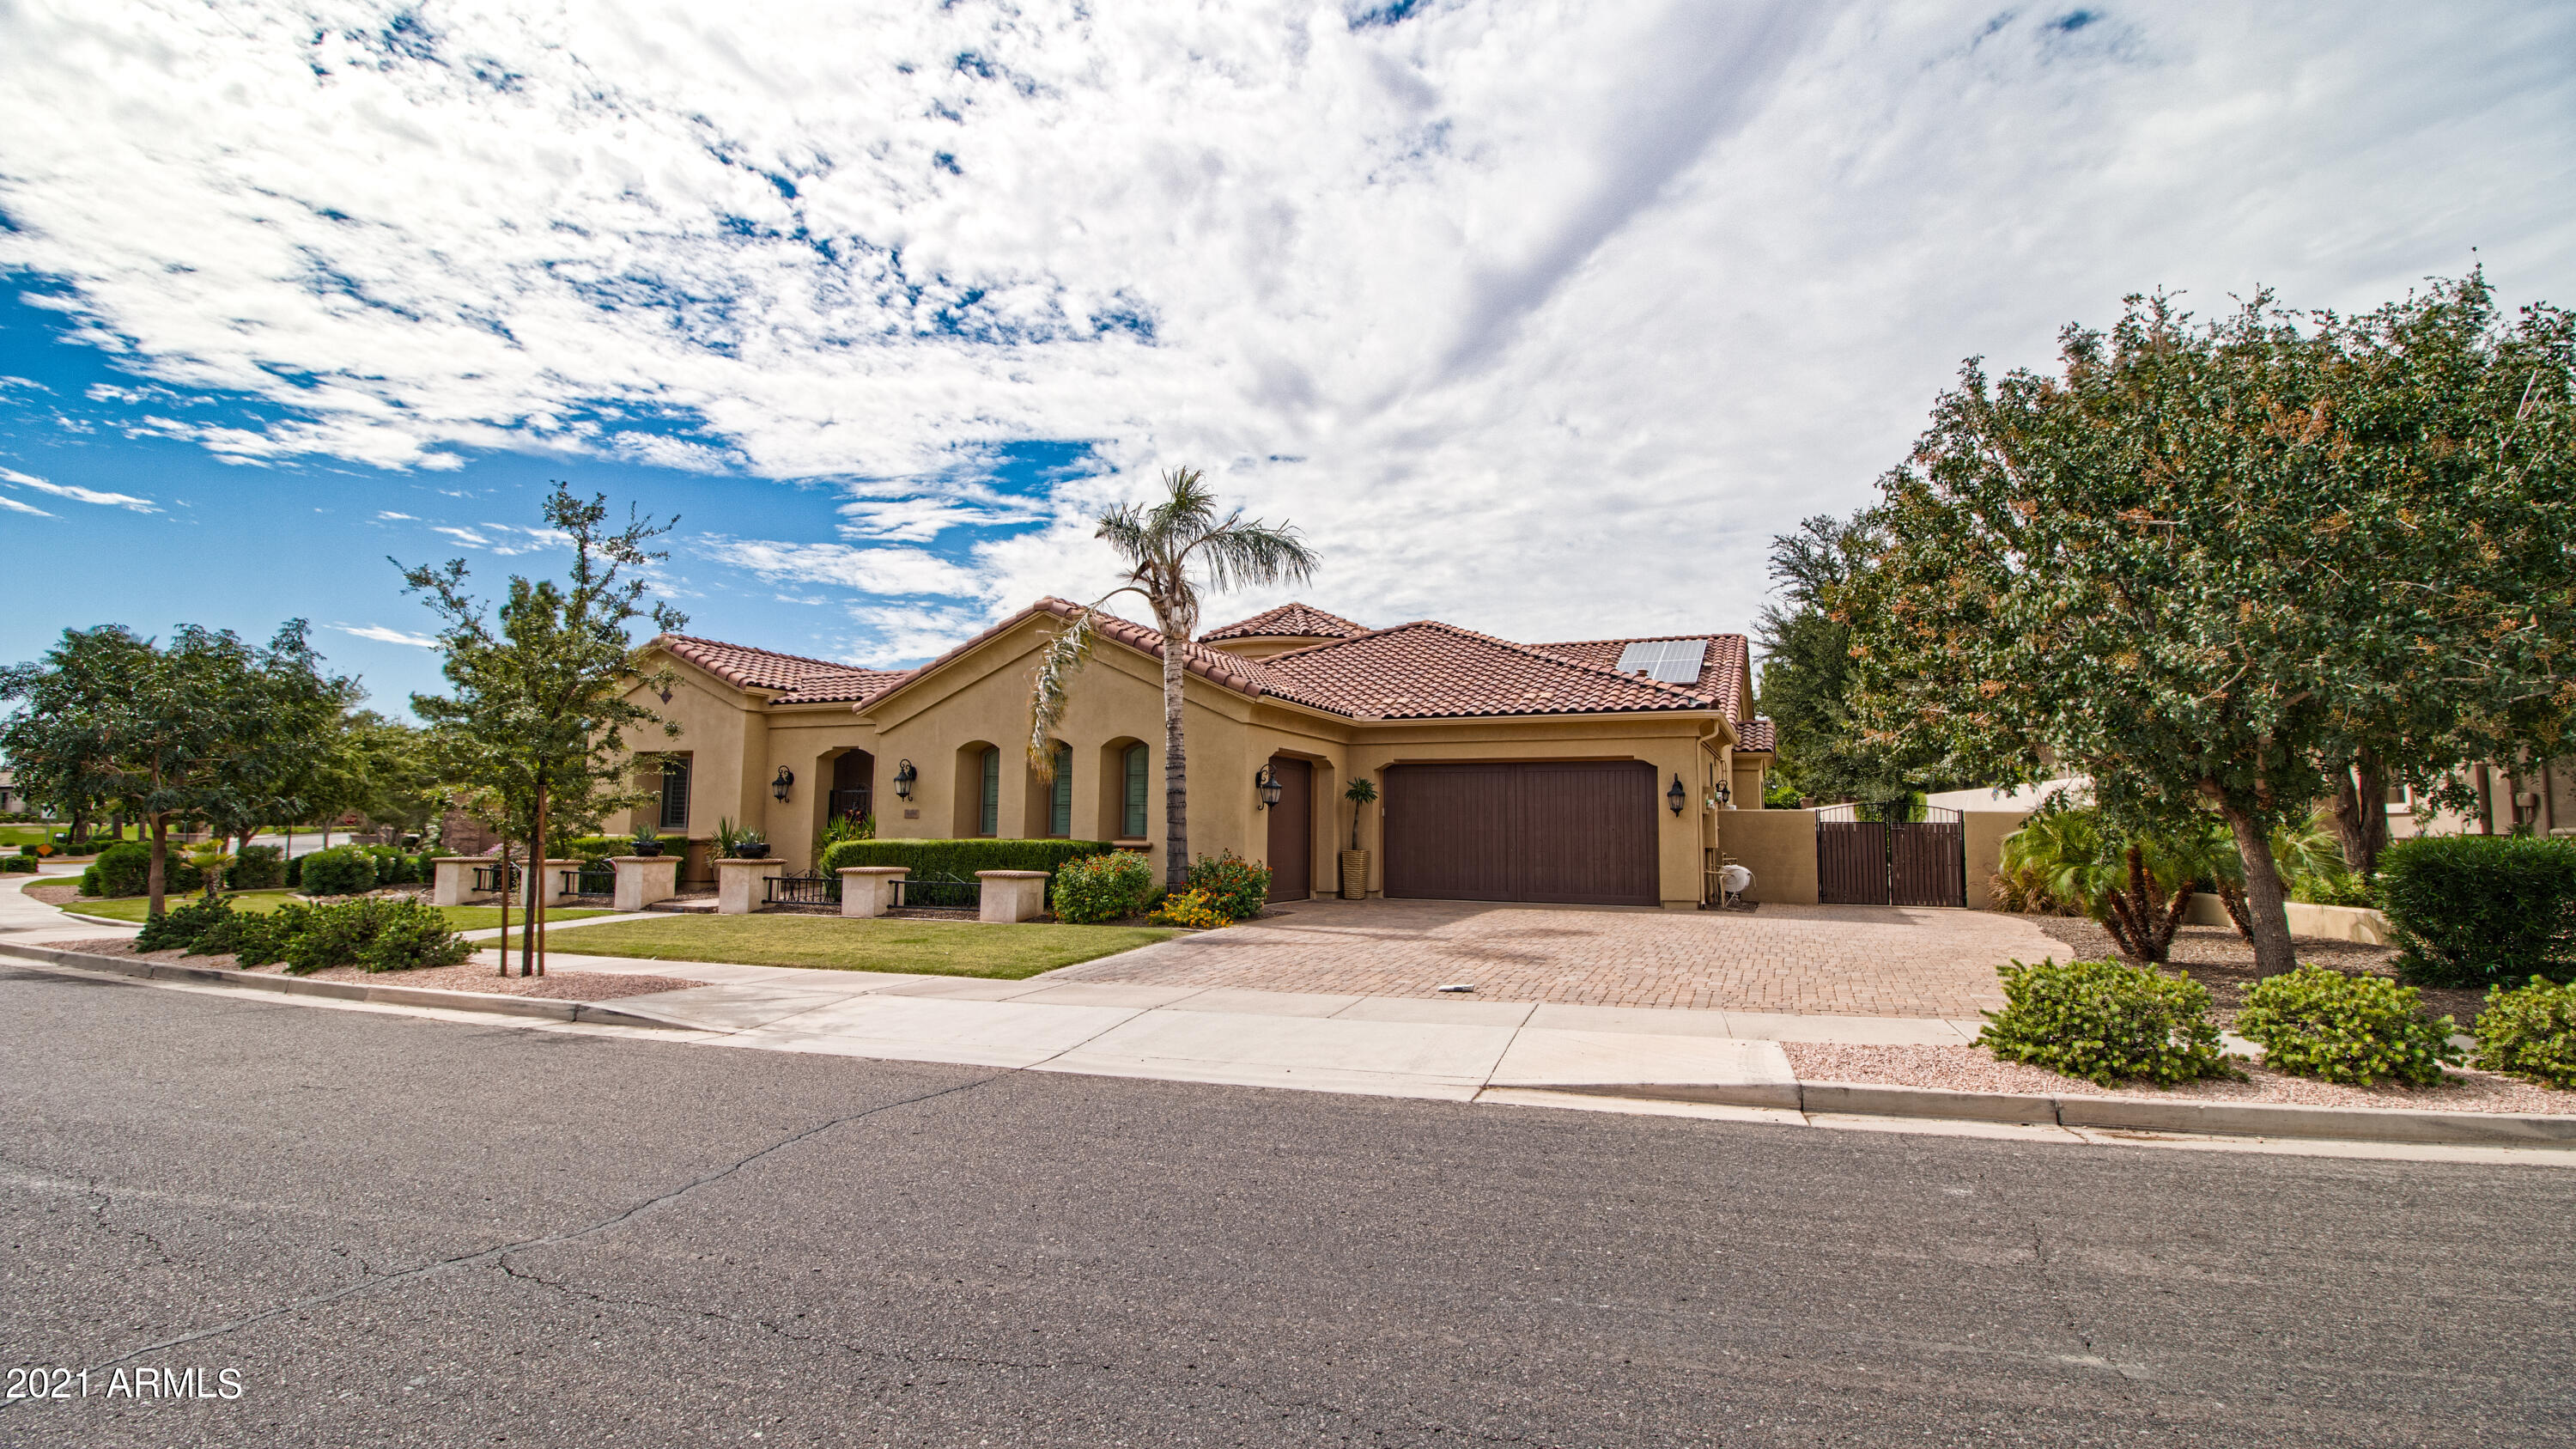 MLS 6308916 4250 S PACIFIC Drive, Chandler, AZ 85248 Waterfront Homes